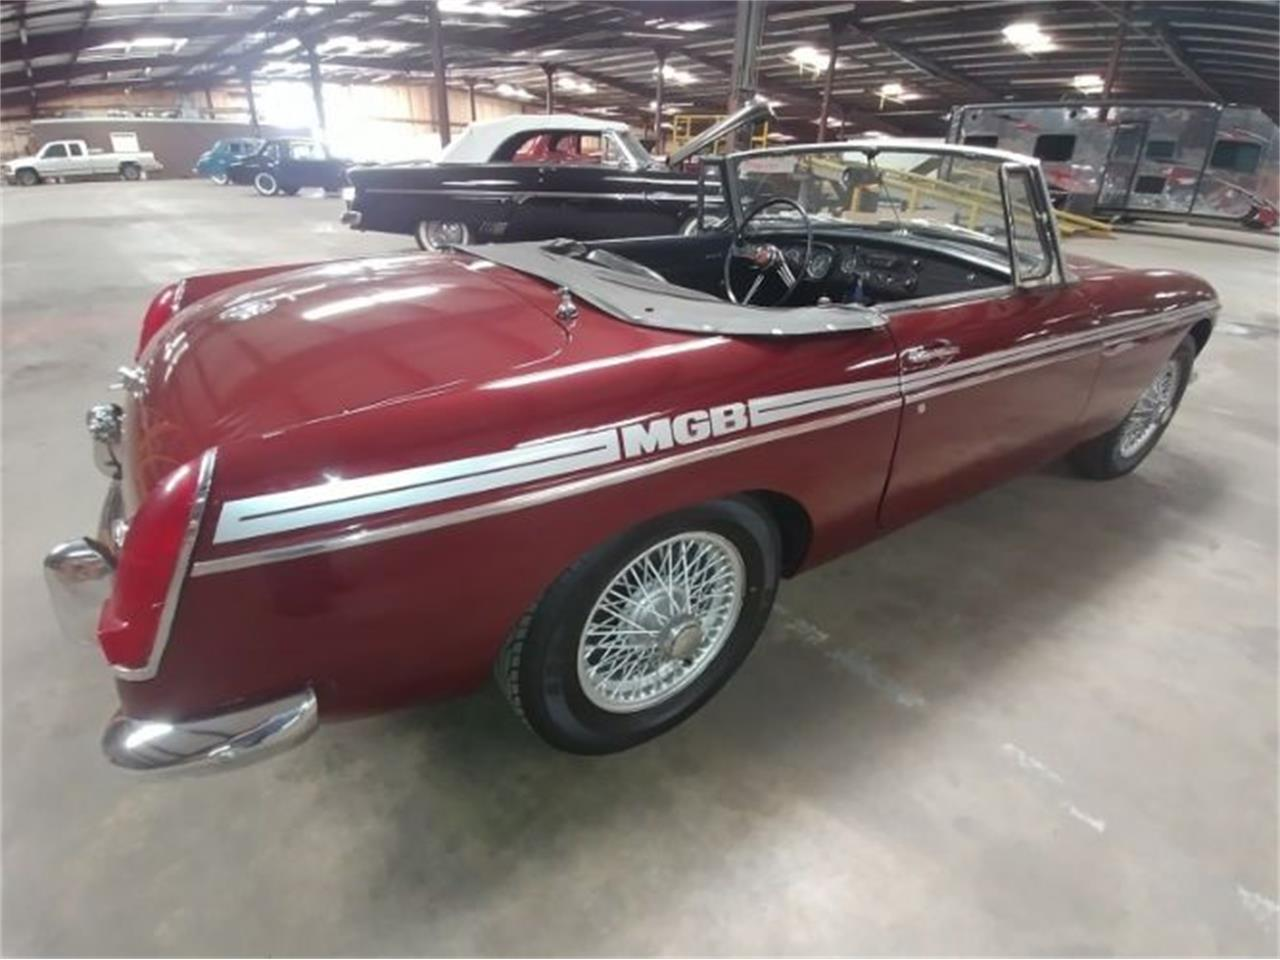 For Sale: 1967 MG MGB in Cadillac, Michigan